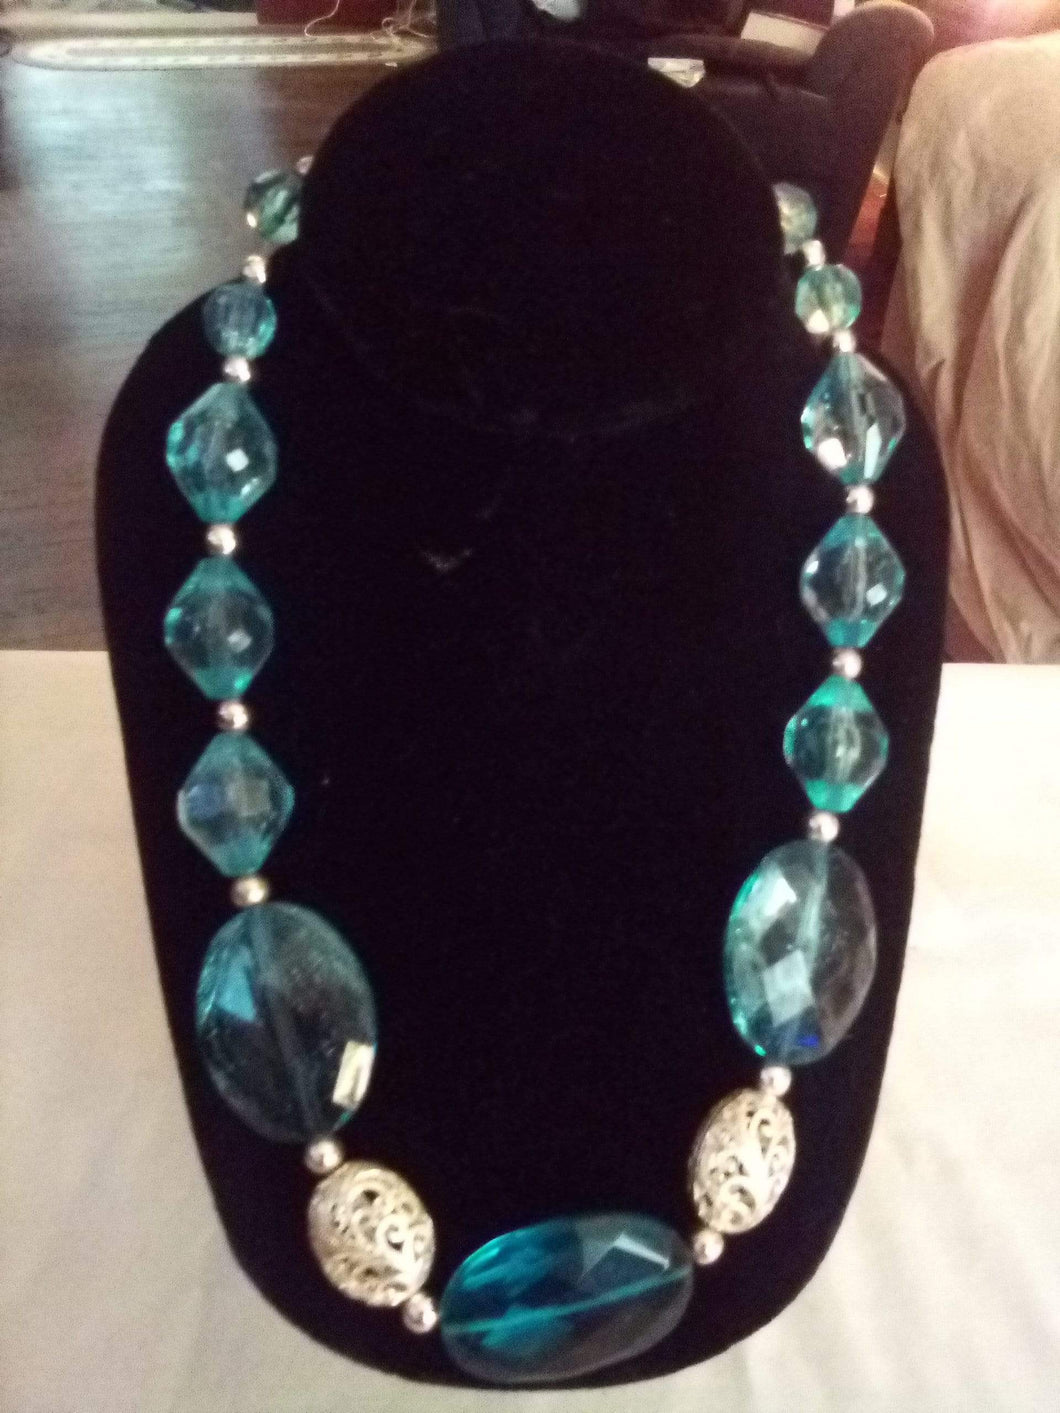 Stunning light blue crystal necklace - B&P'sringsnthings